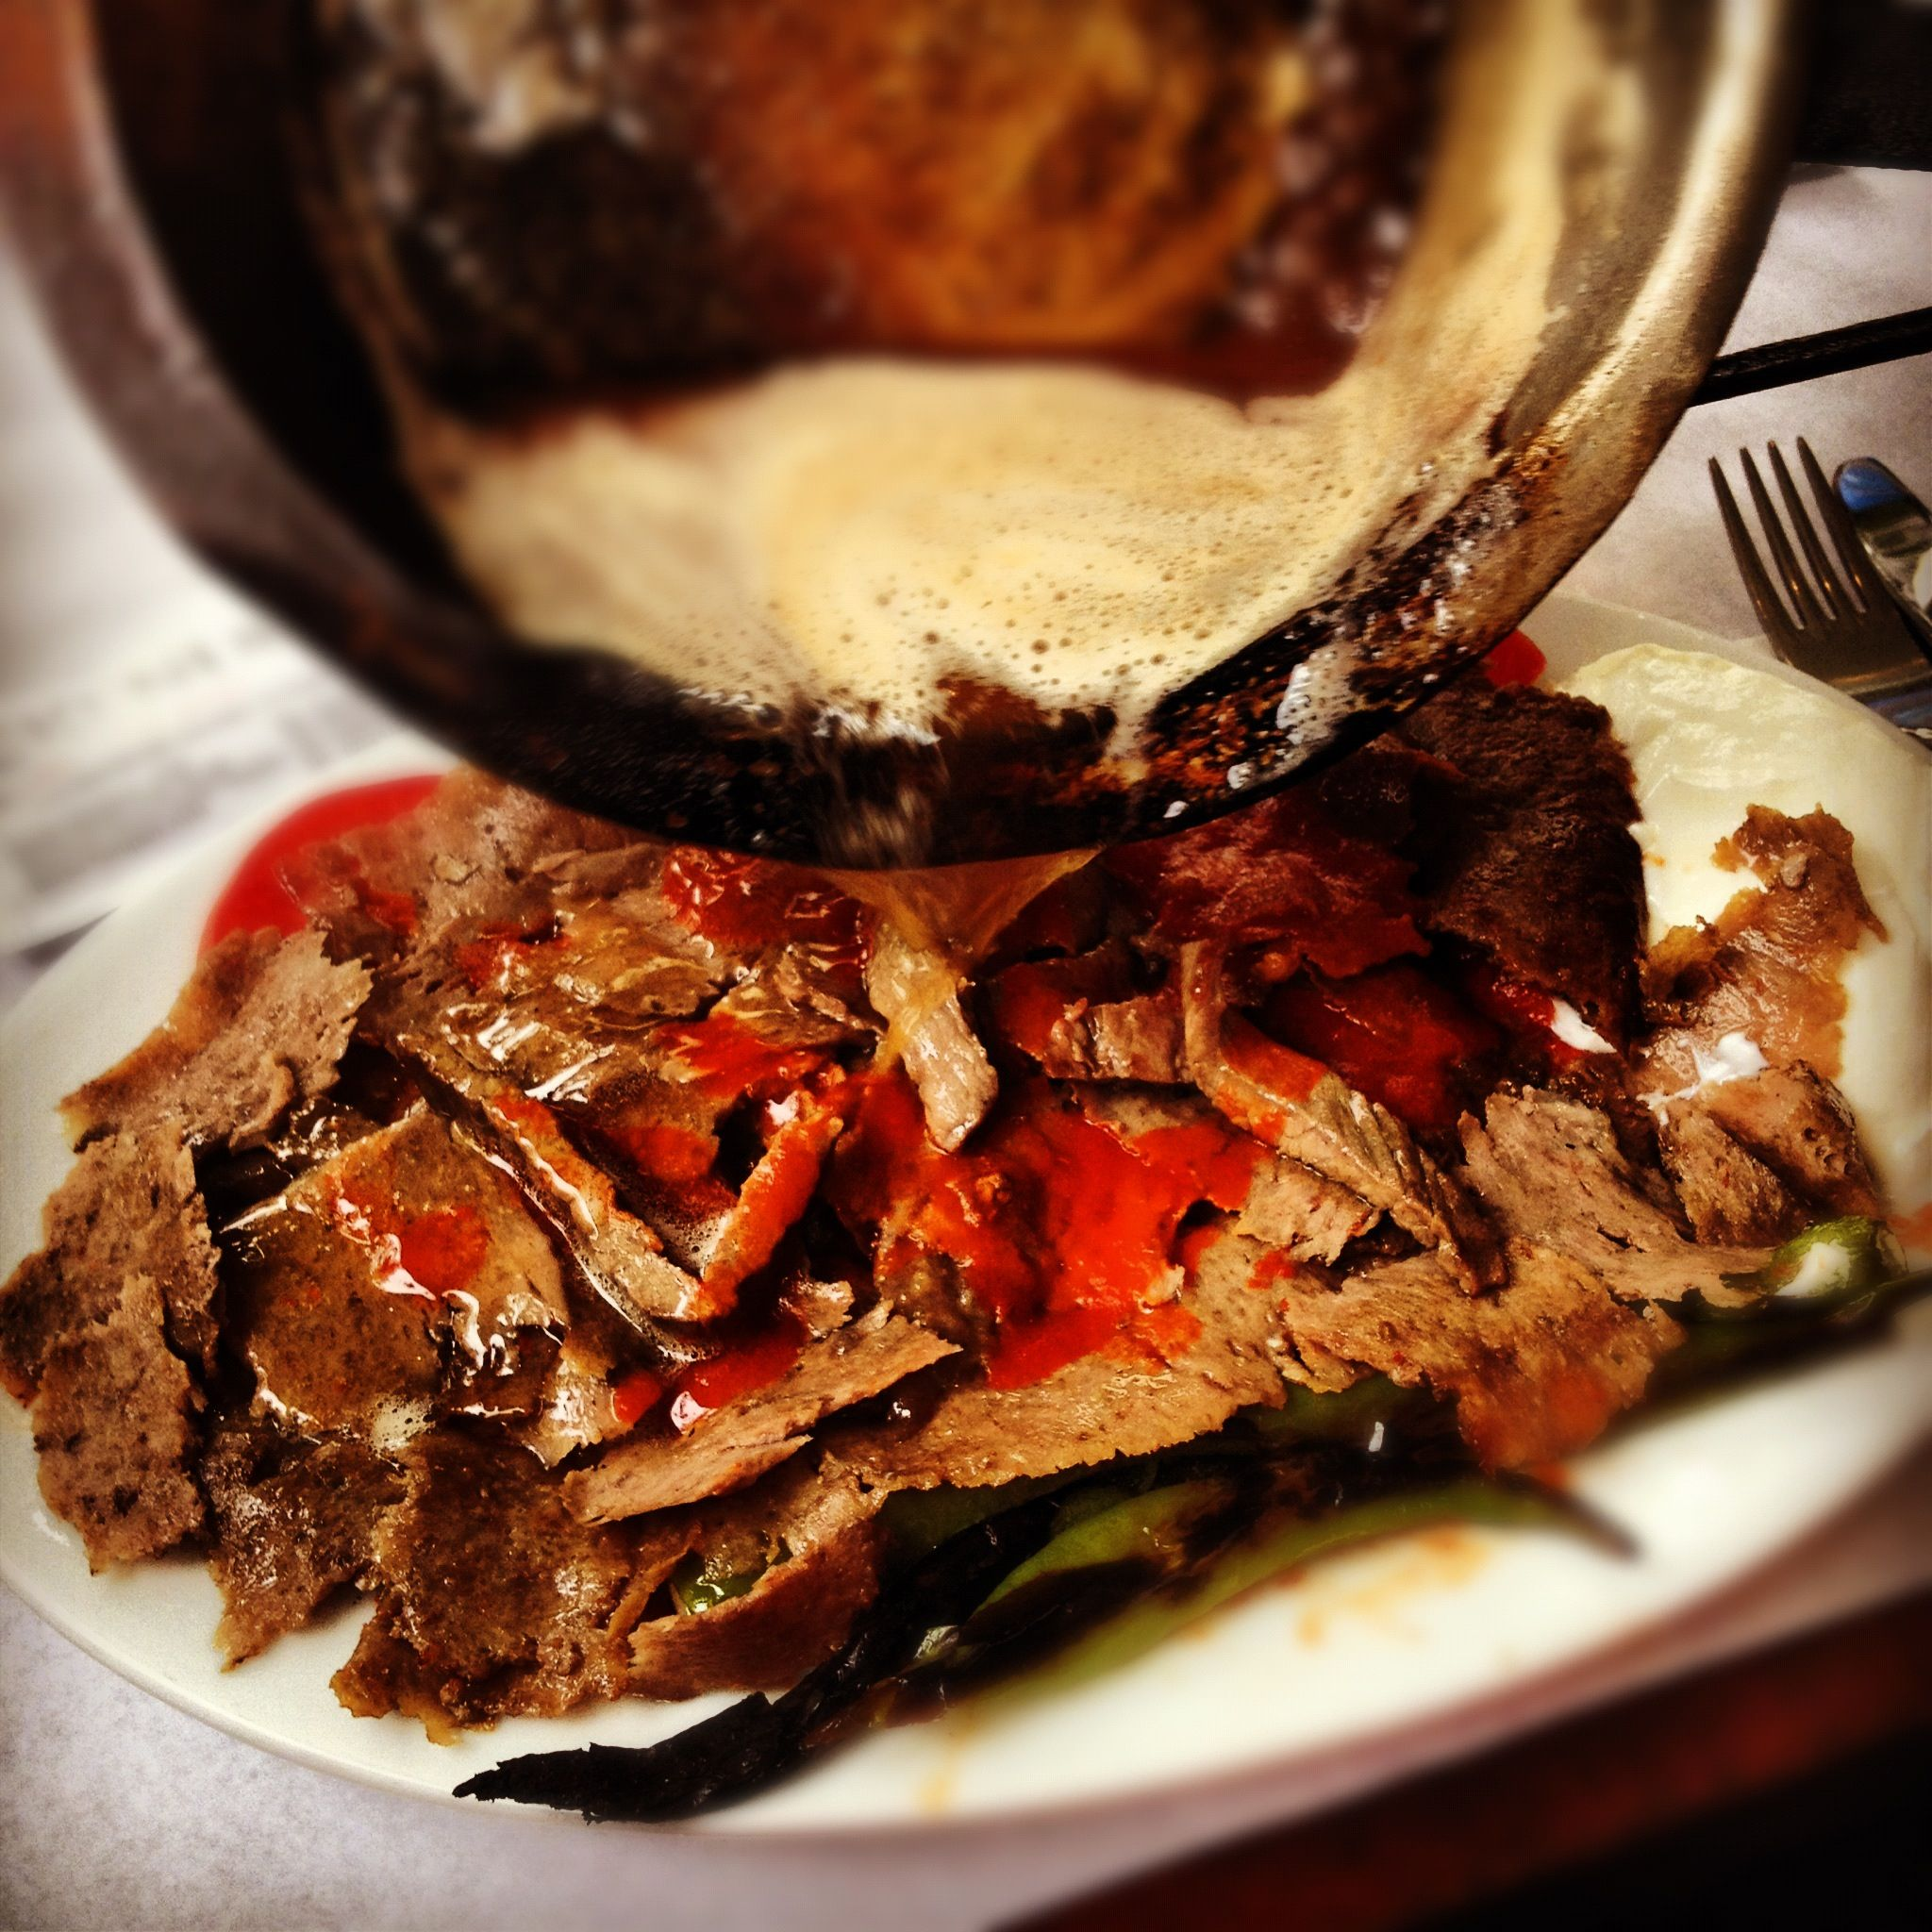 Skender kebap one of the most famous meats in turkey for Authentic turkish cuisine